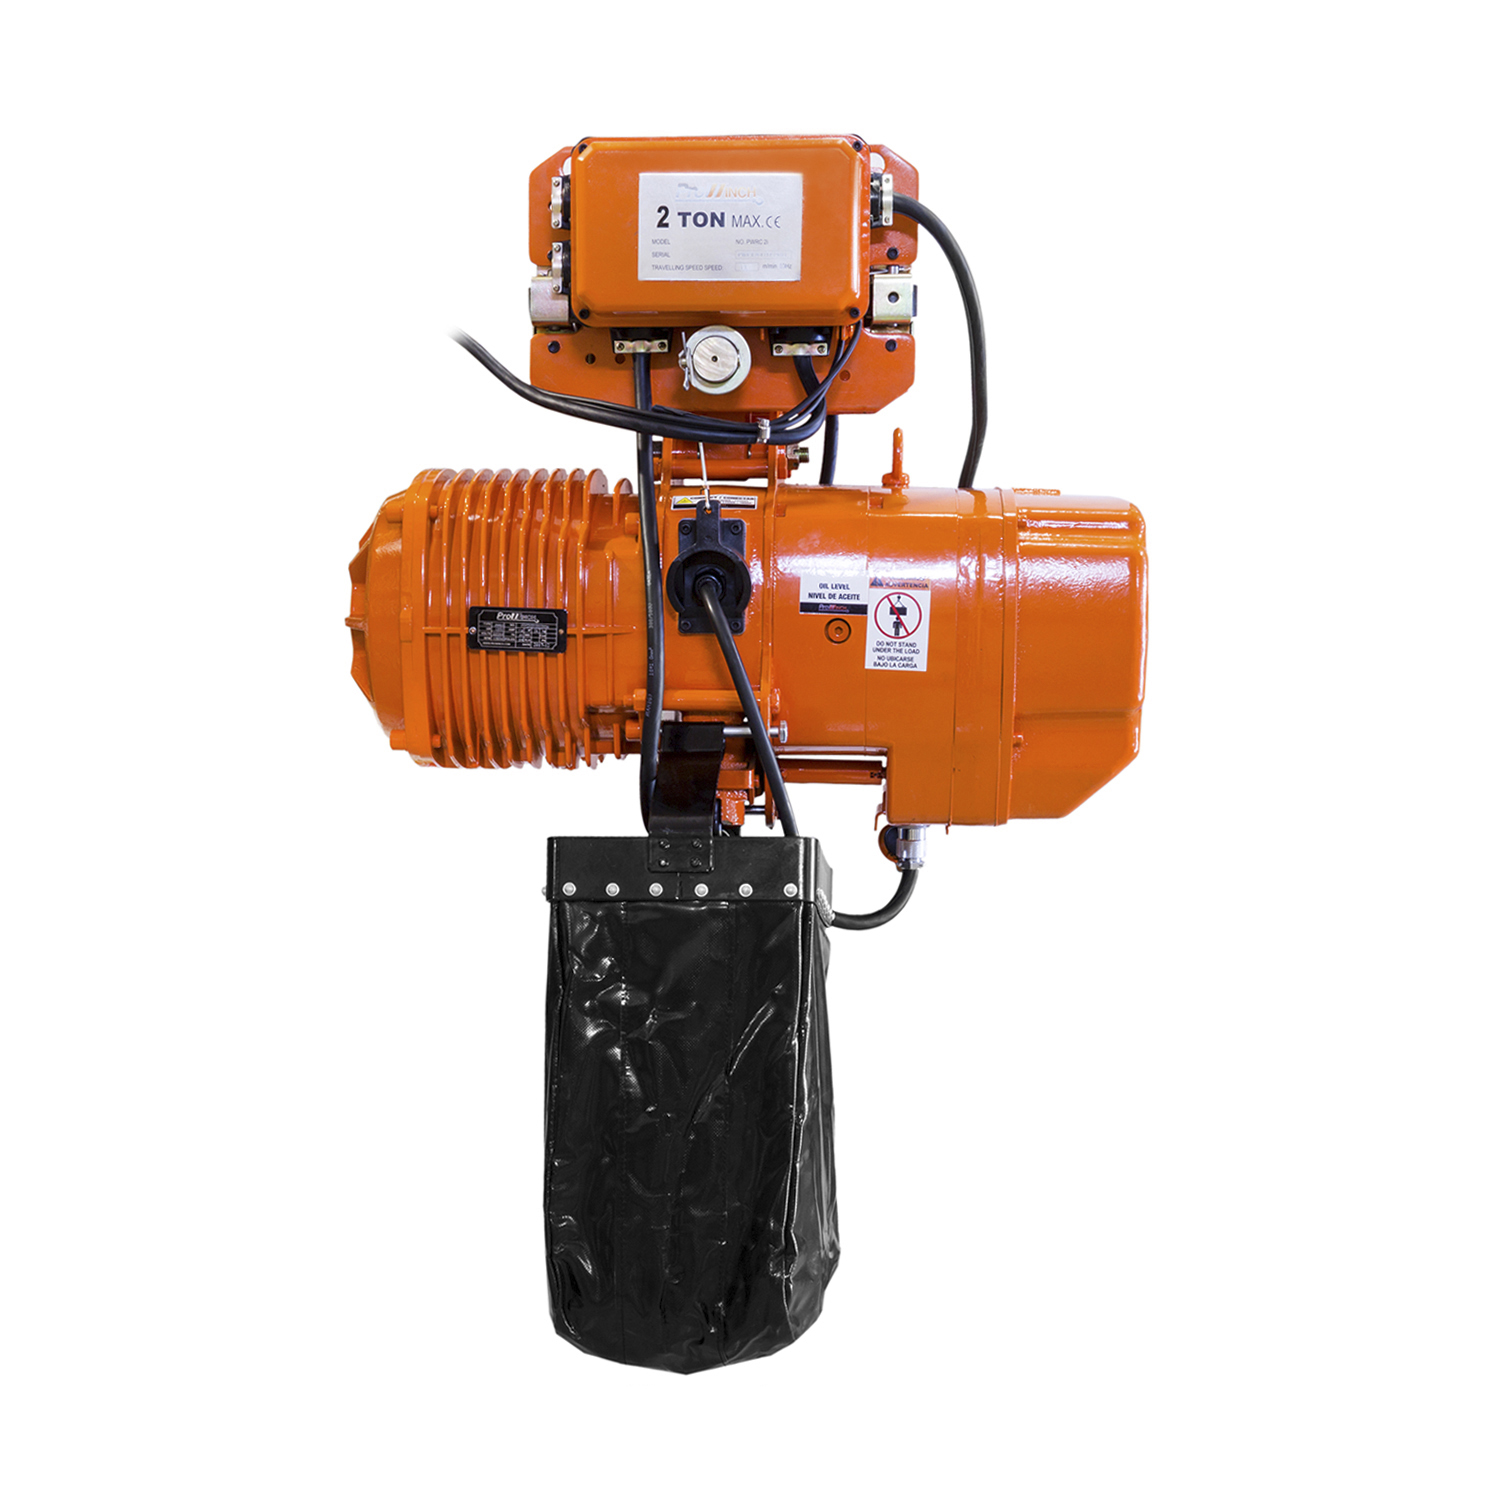 Prowinch 2 Ton Electric Chain Hoist with Electric Trolley Wireless 20ft Lifting Height G80 Chain Water Resistant Pendant Control M5//H4 Duty Cycle 3 Phase 240//460V